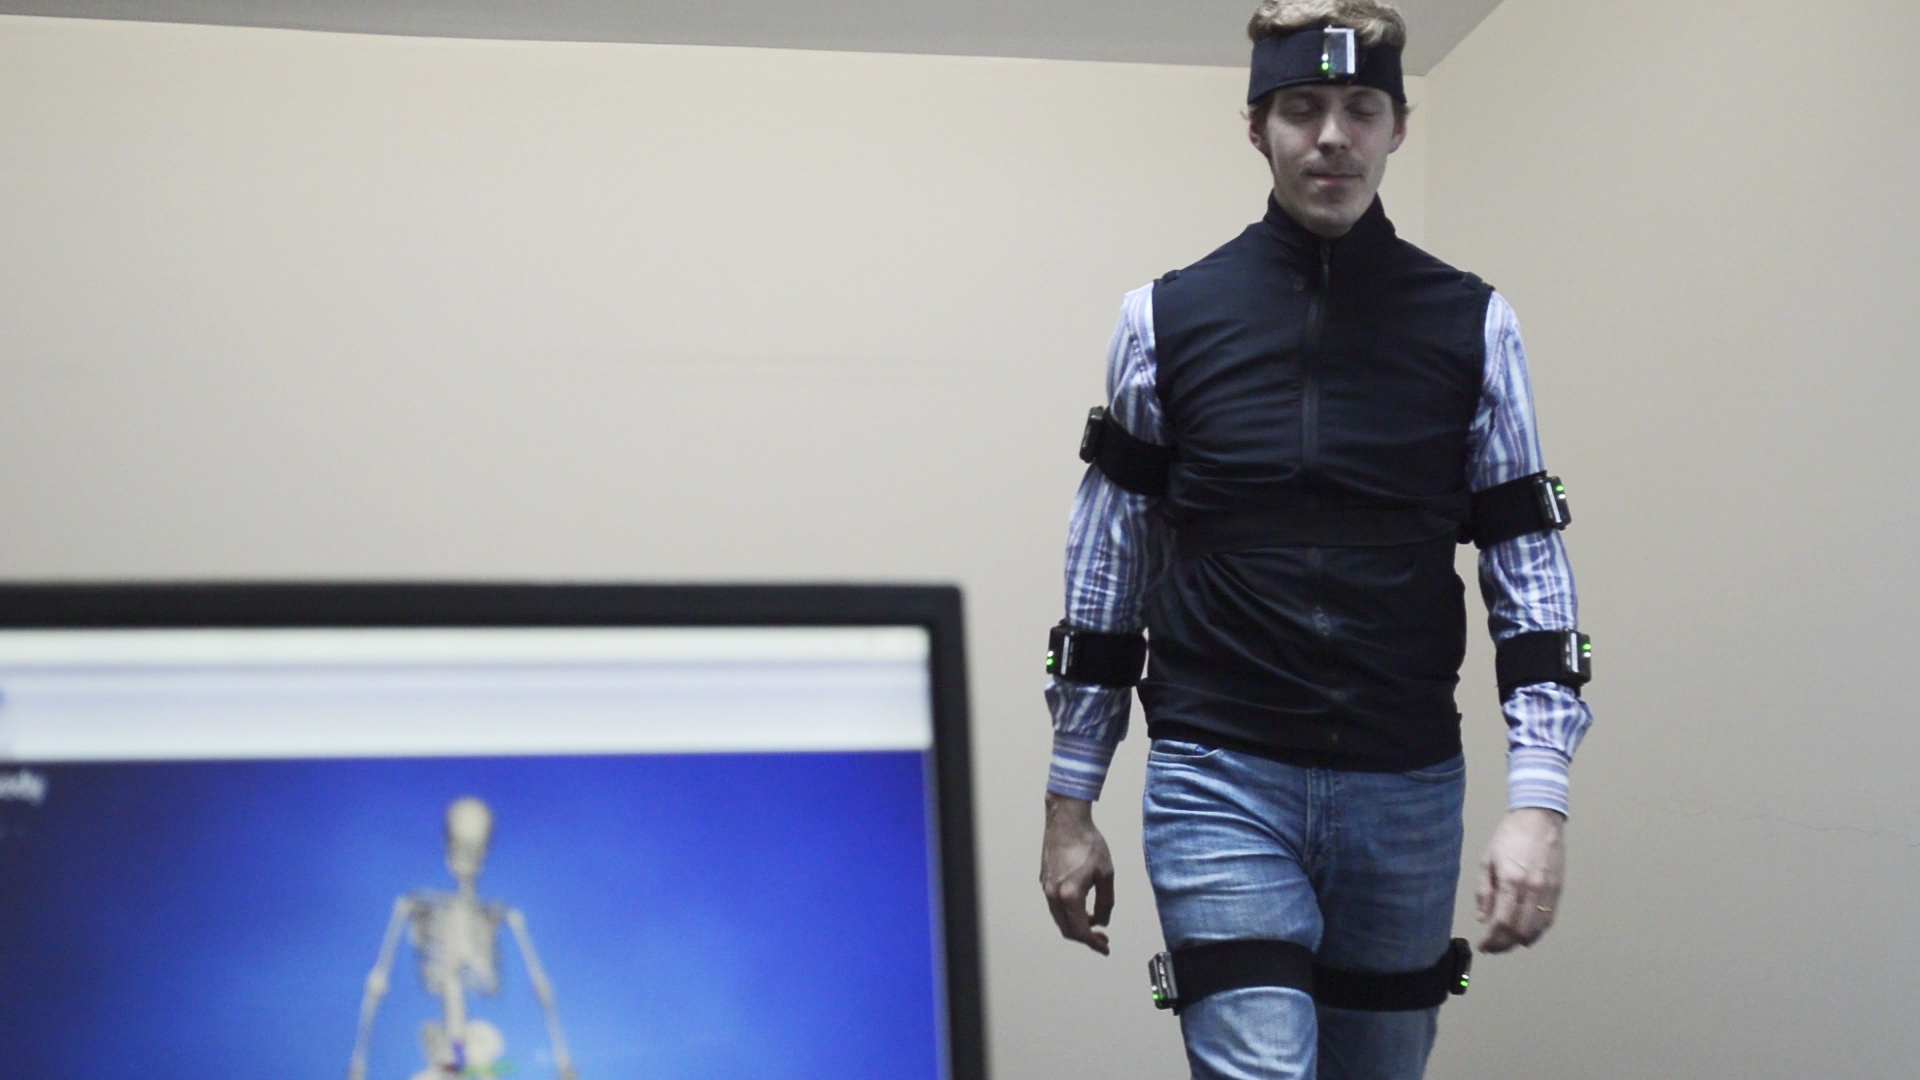 iSen Full Body IMU Motion Capture